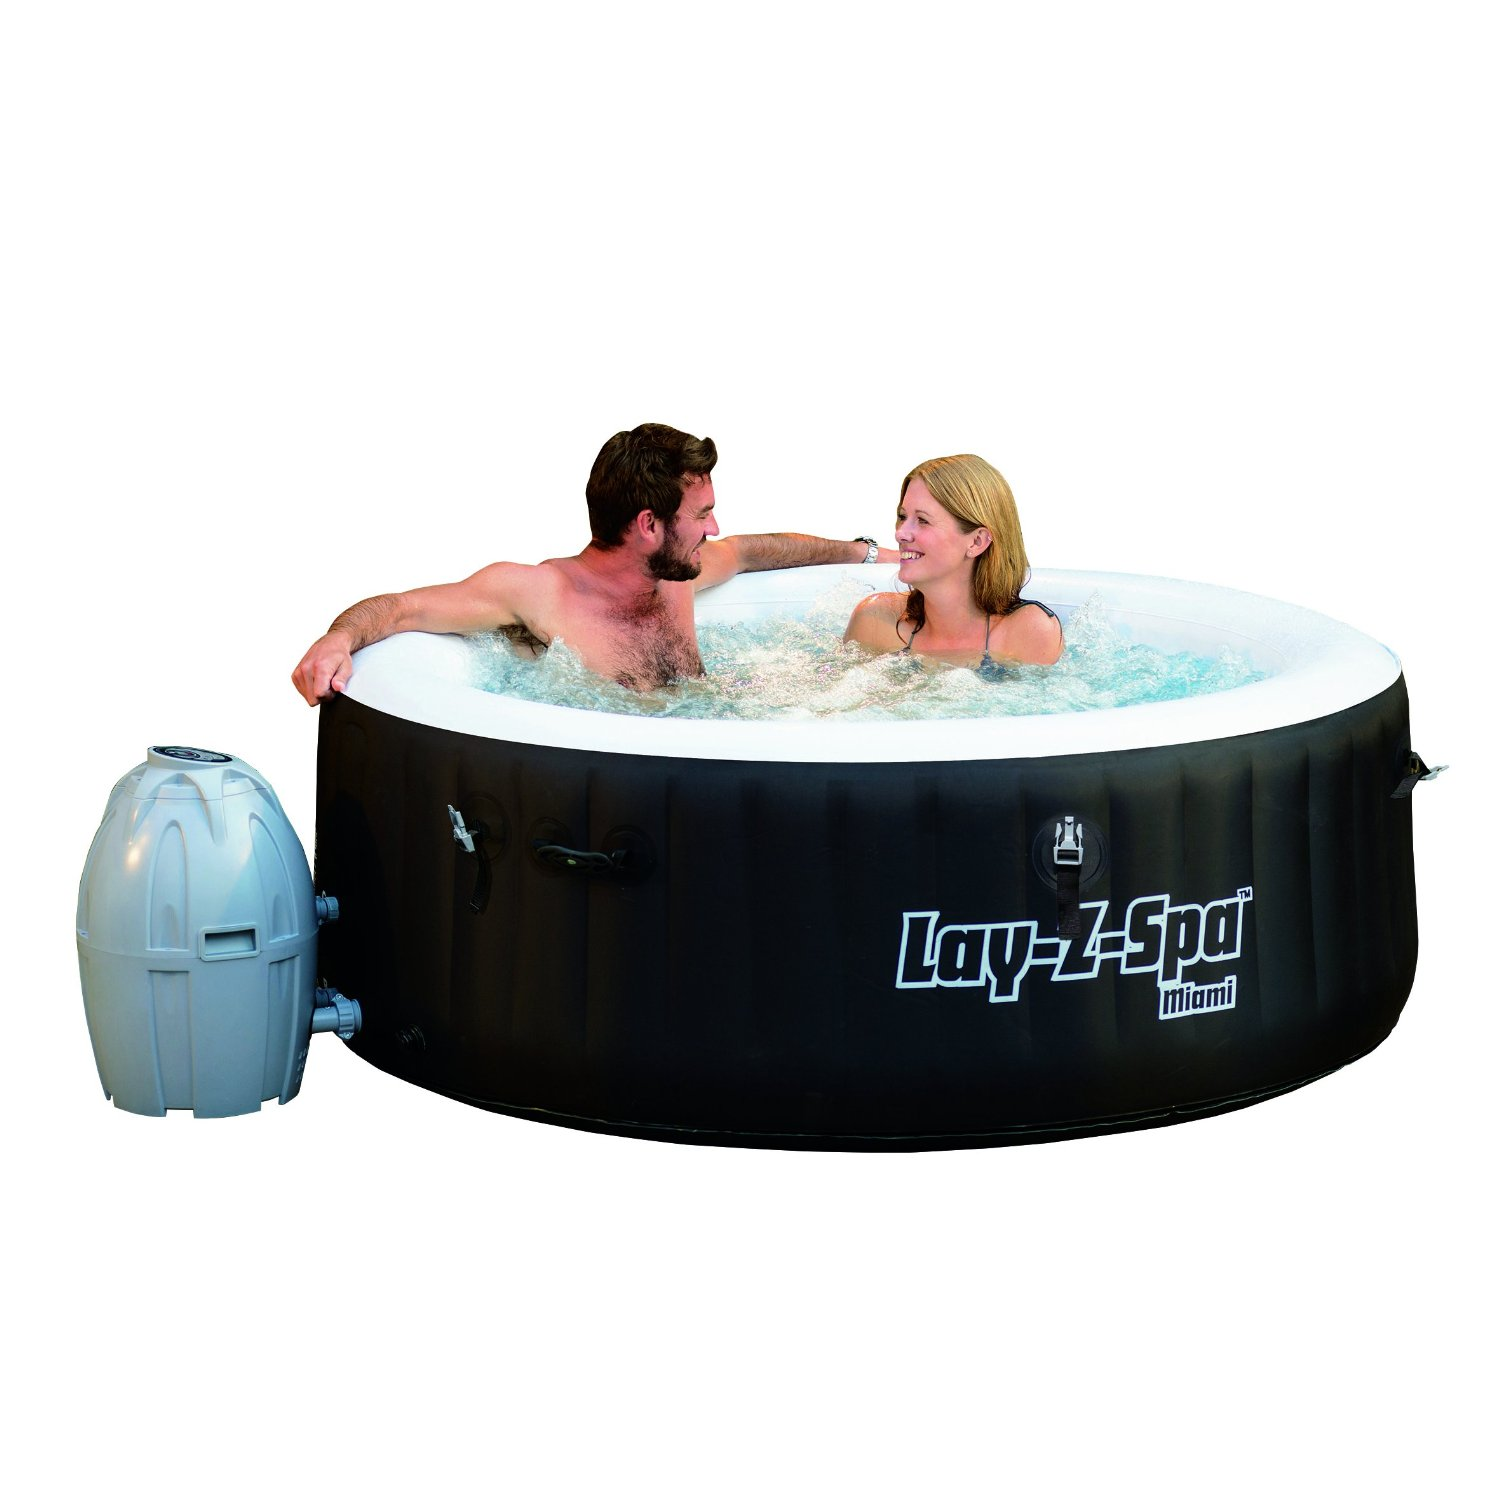 Lay-z-Spa Miami Air Jet Inflatable Hot Tub Review - Best Inflatable ...